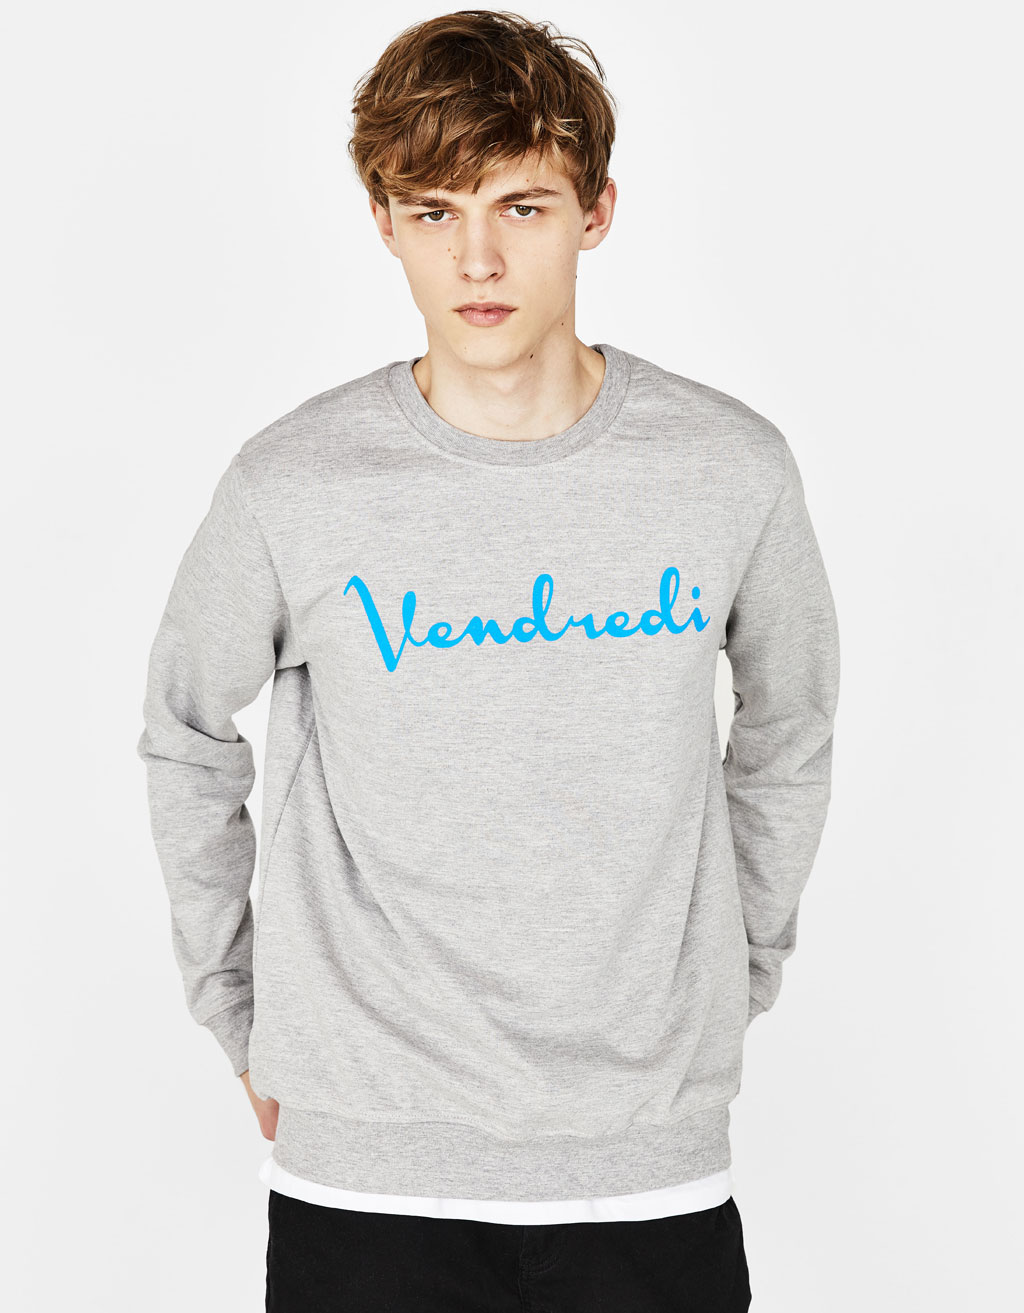 Sweatshirt with slogan